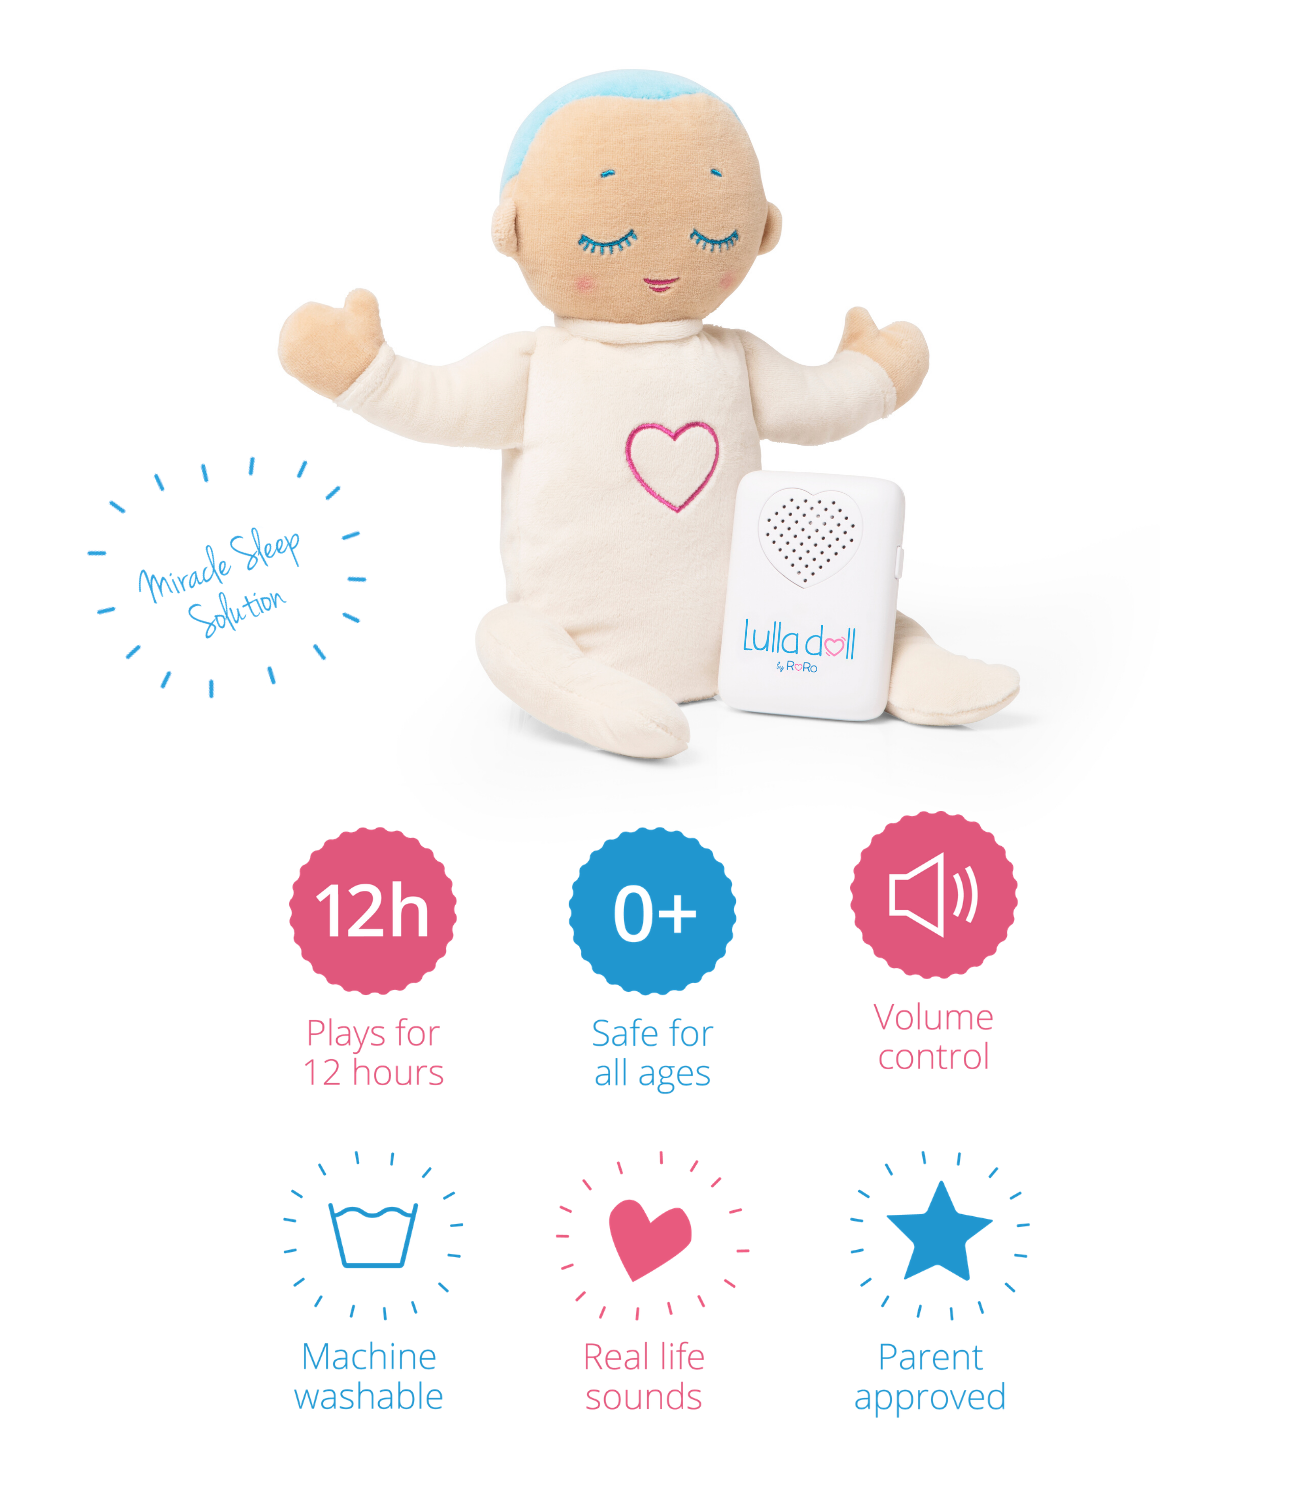 Lulla doll is the best baby sleep aid